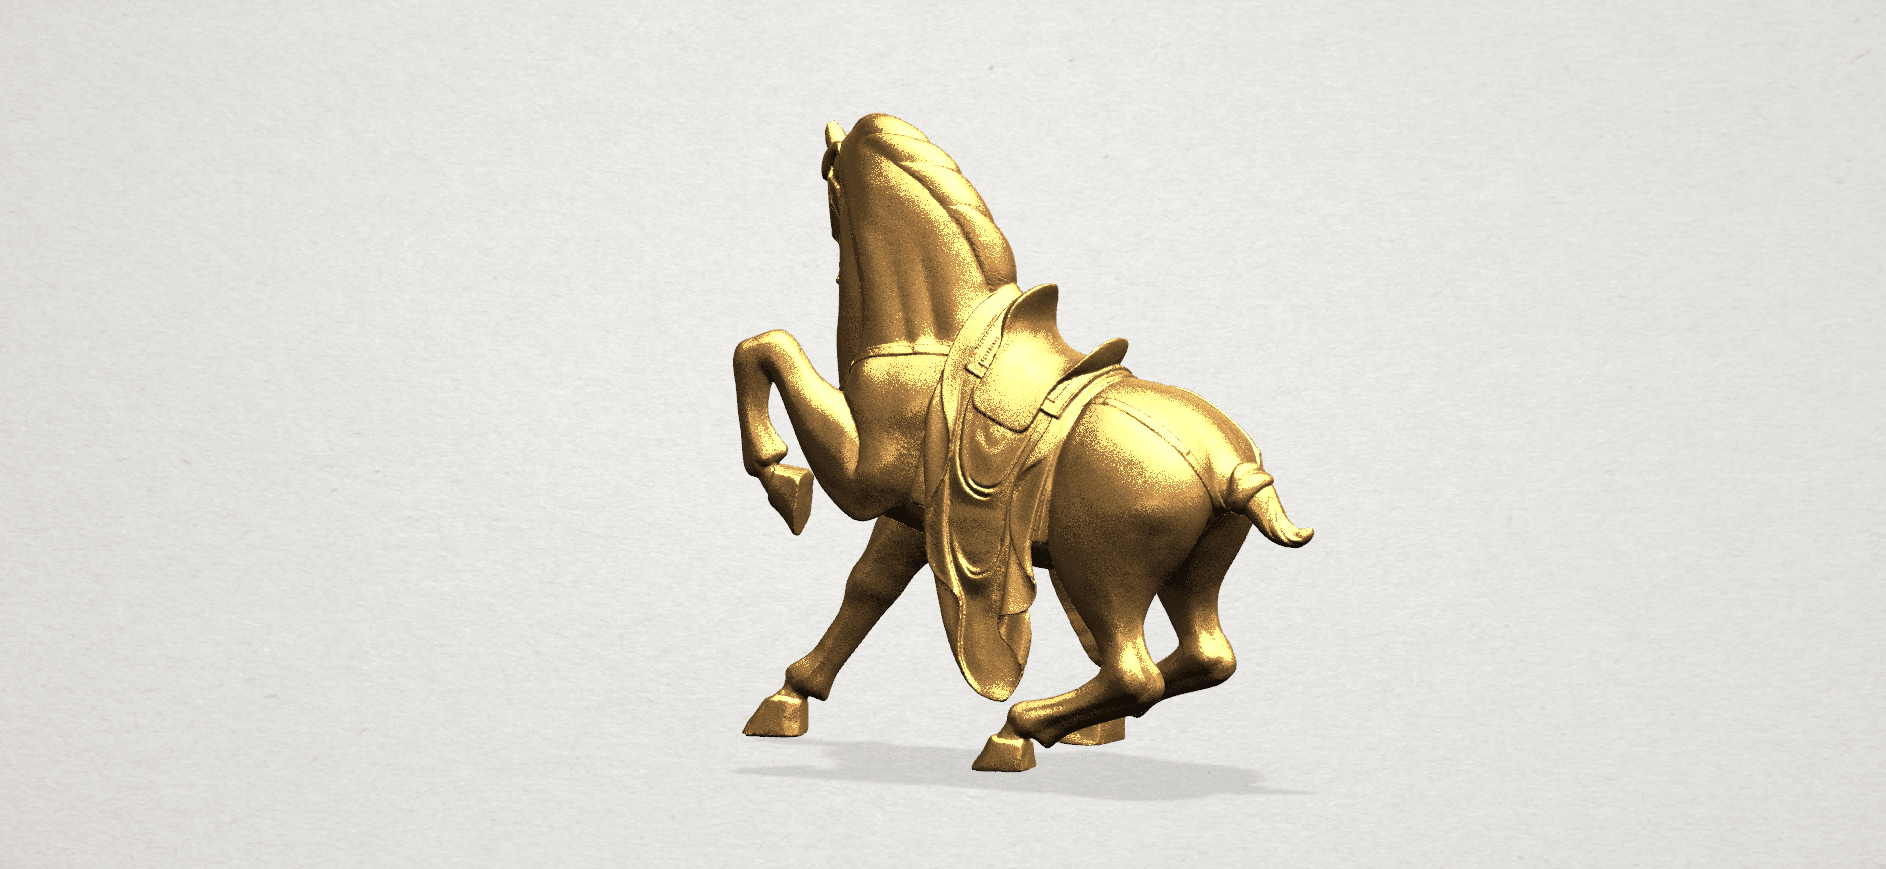 Horse III - B05.png Download free STL file Horse 03 • 3D printing template, GeorgesNikkei